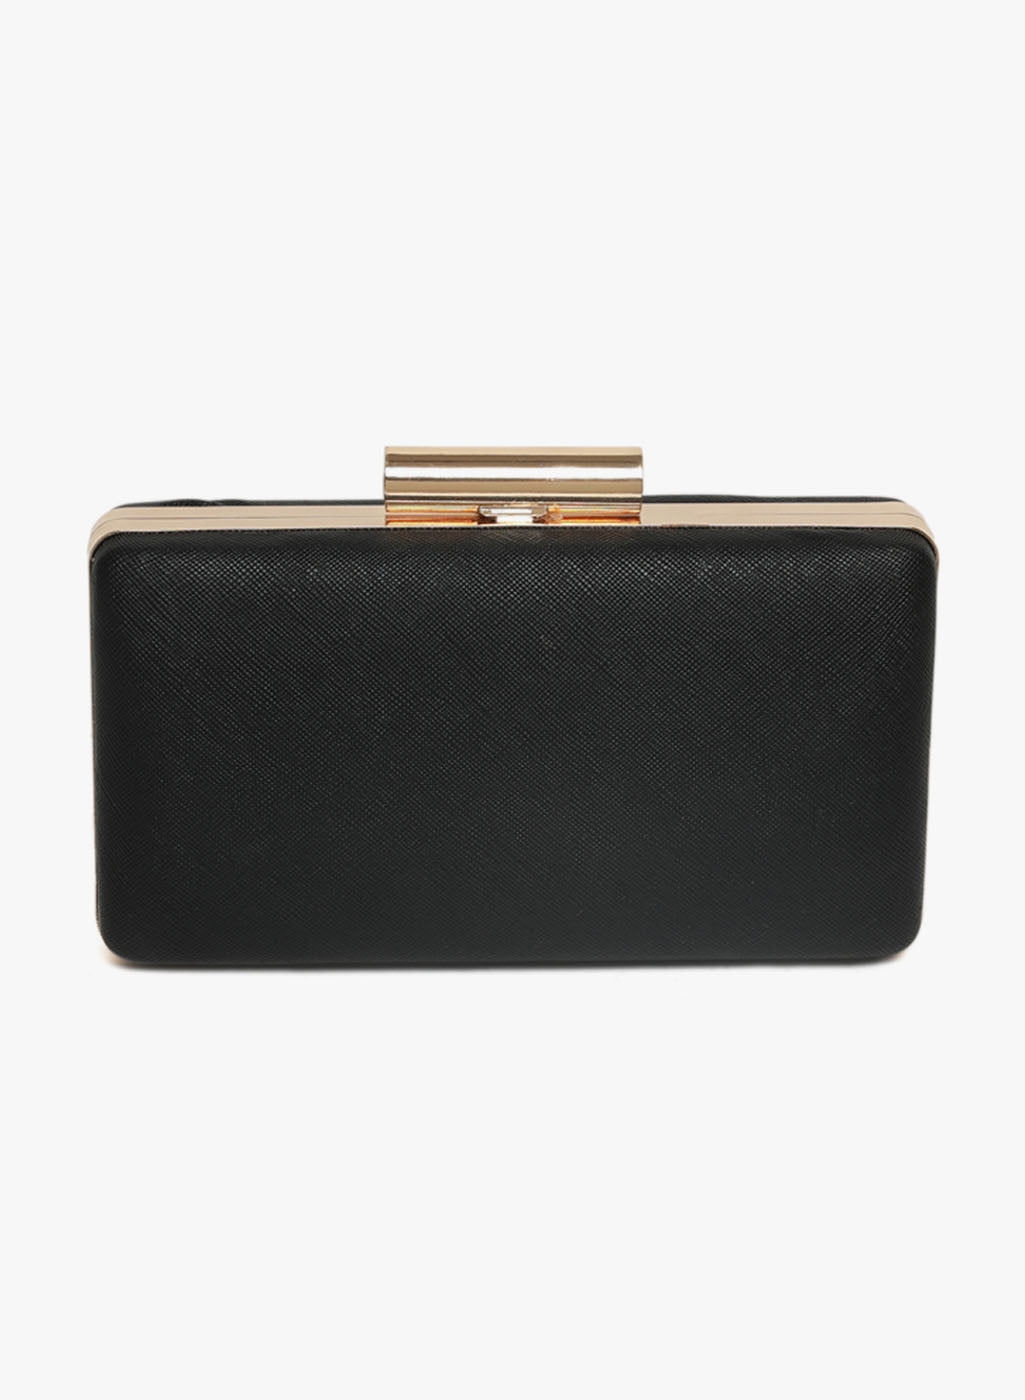 Nicole Shiny Black Color Minaudiere